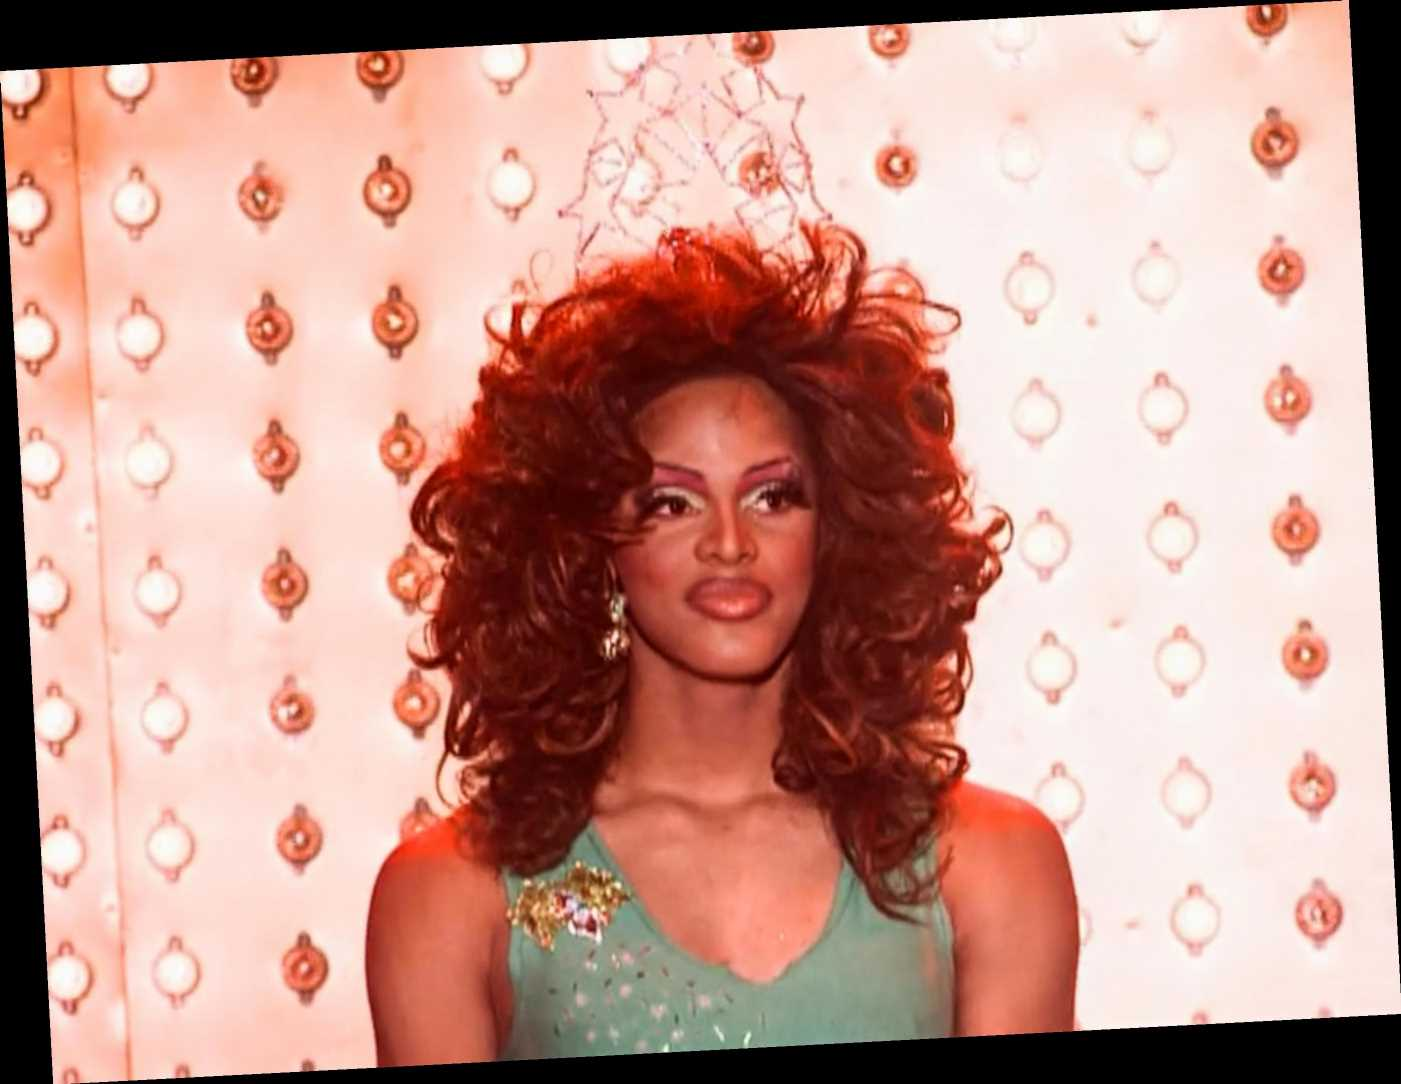 RuPaul's Drag Race winner Tyra Sanchez apologies for making threats